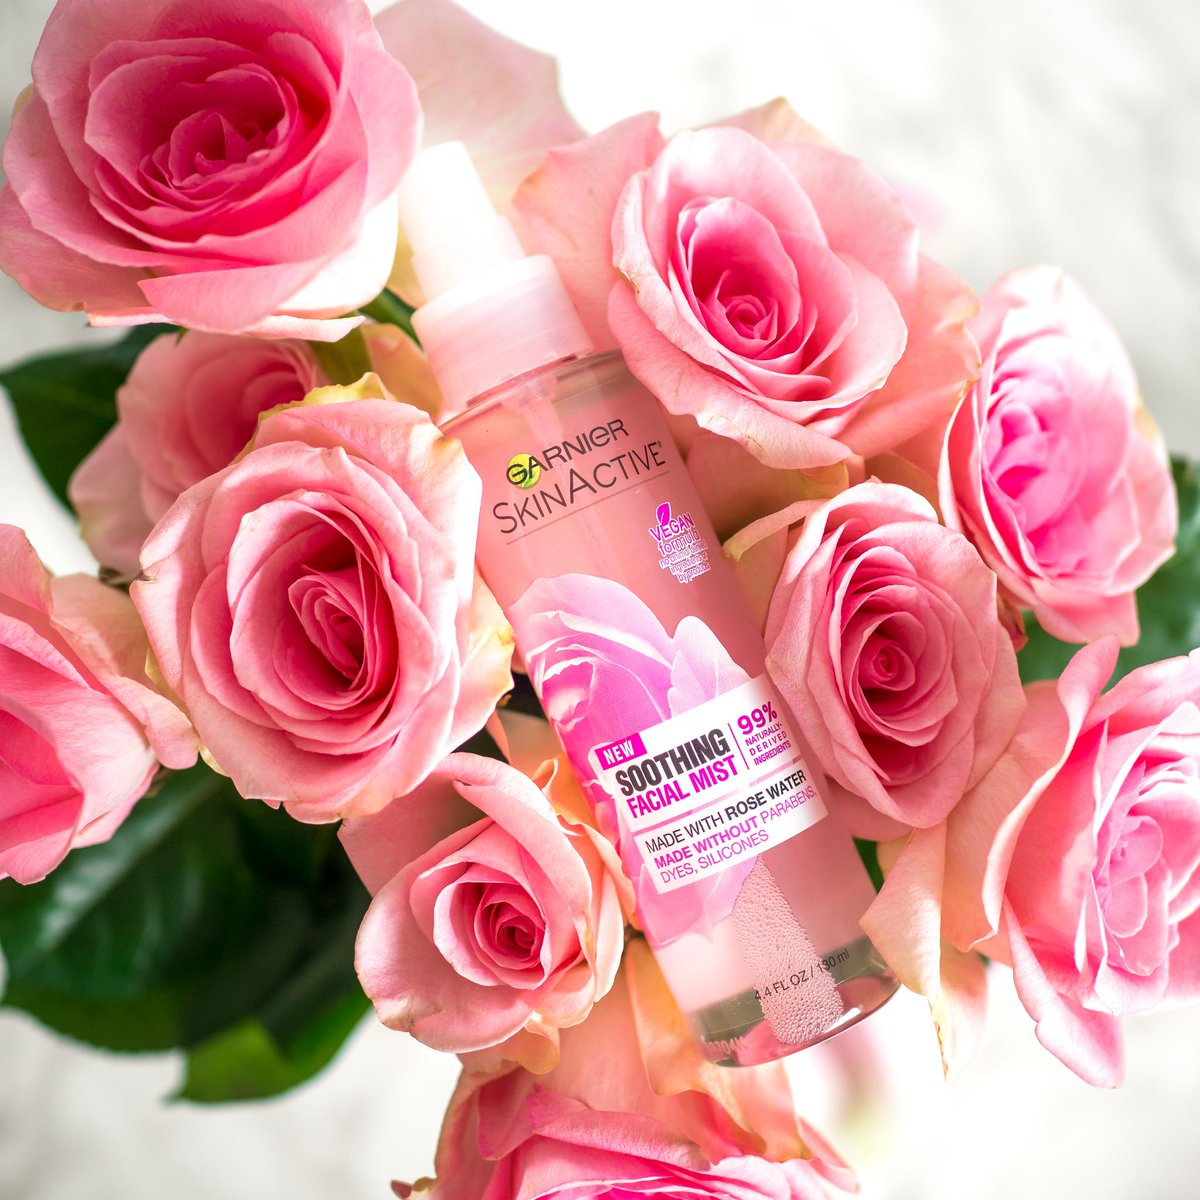 Garnier Usa On Twitter A Bouquet Of Flowers To Brighten Our Day